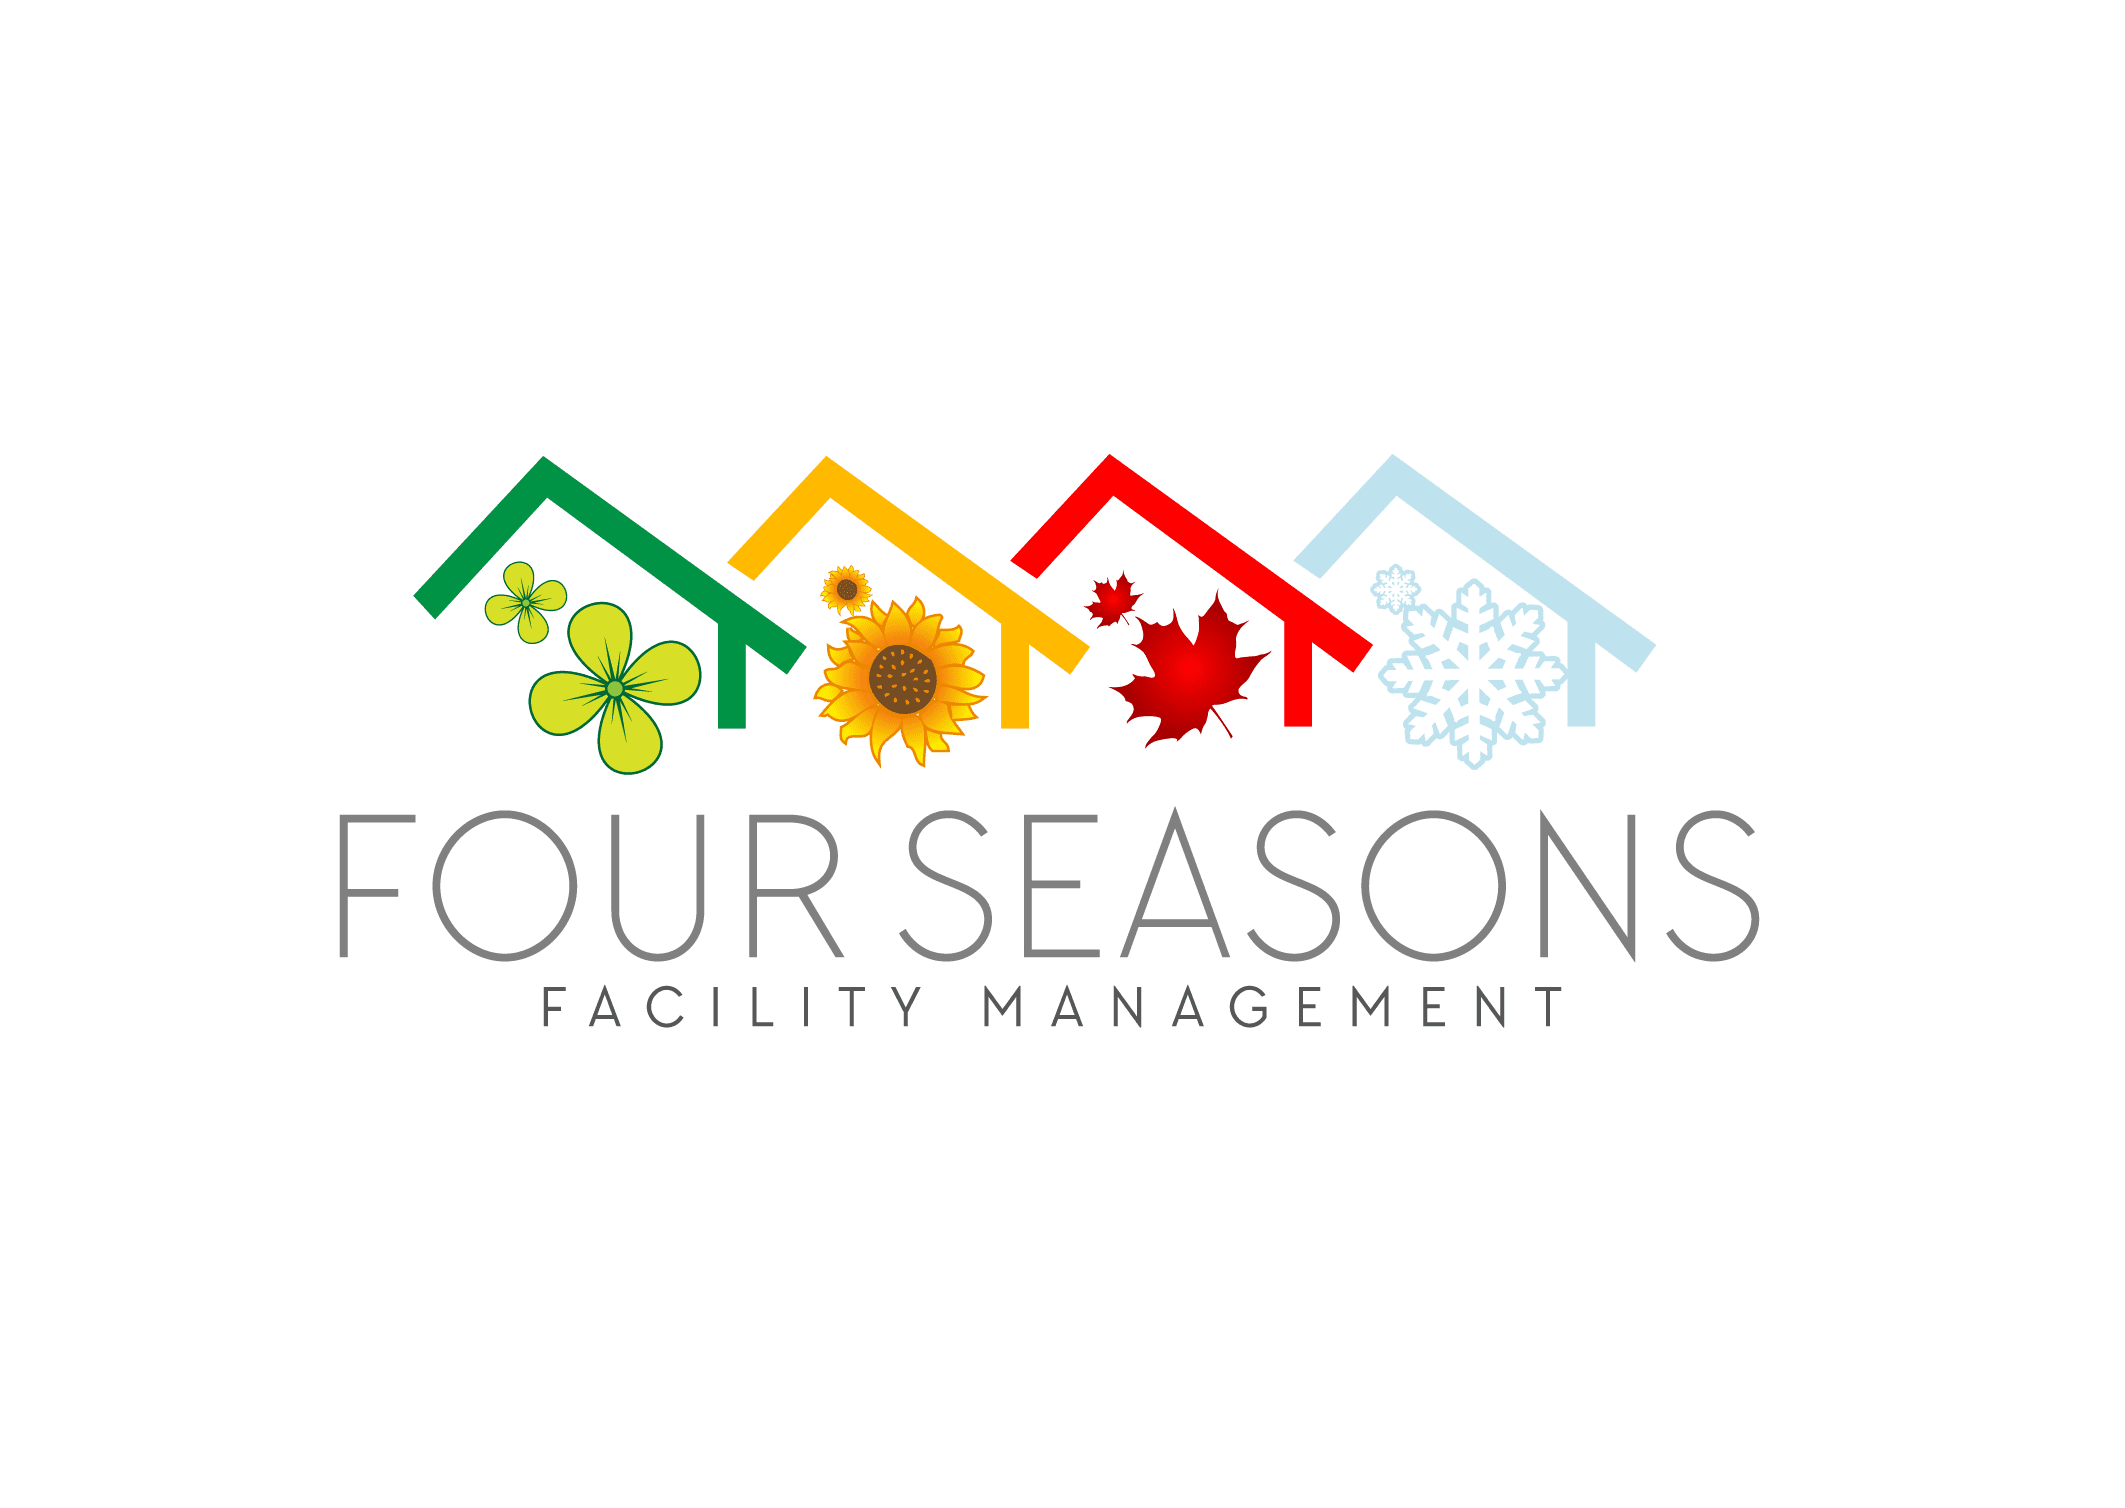 Four Seasons Facility Management